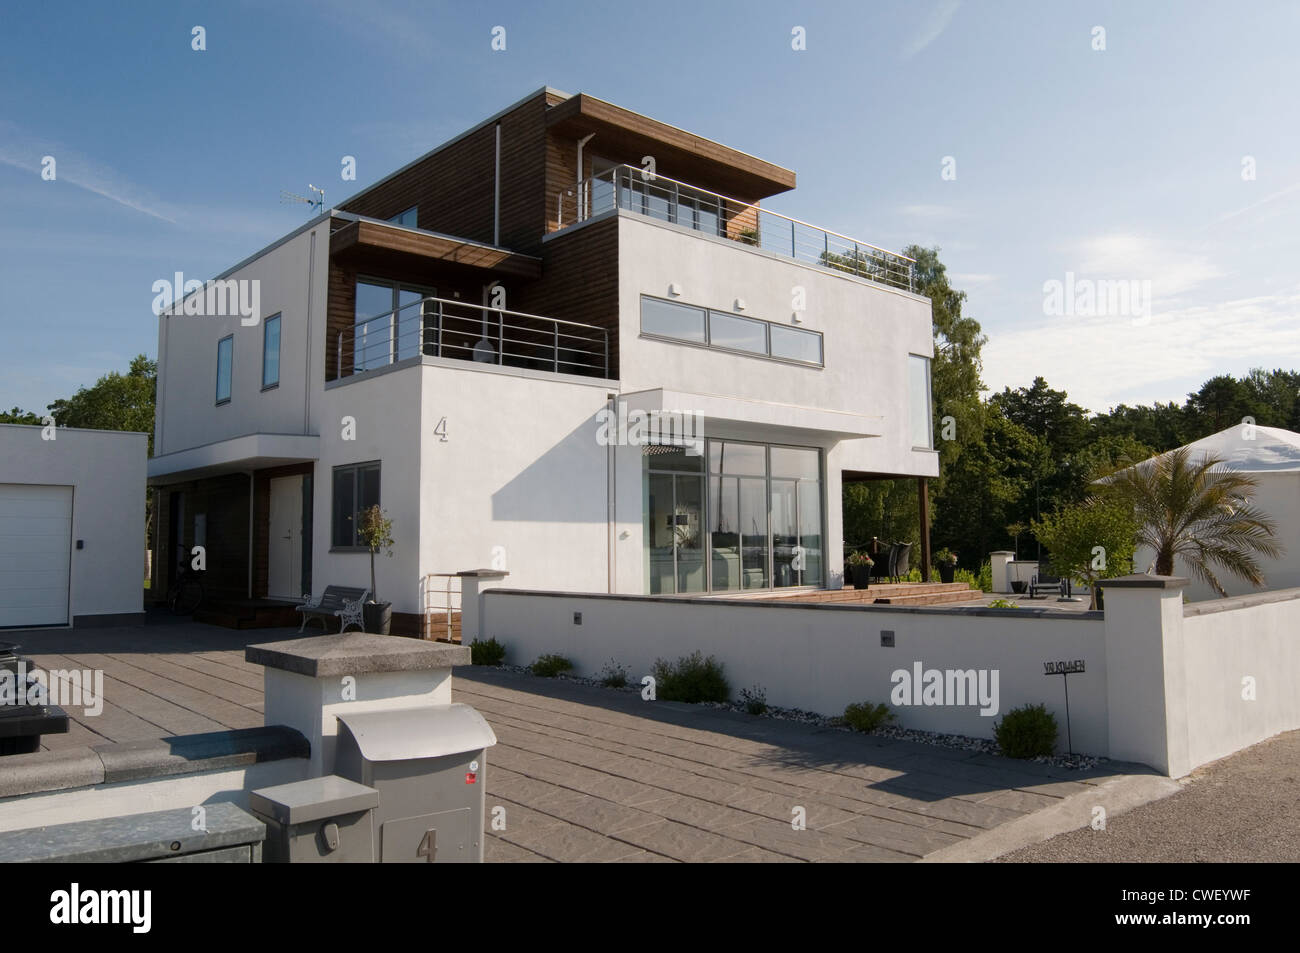 modern-swedish-house-houses-home-homes-minimalist-building-grand-designs-CWEYWF.jpg